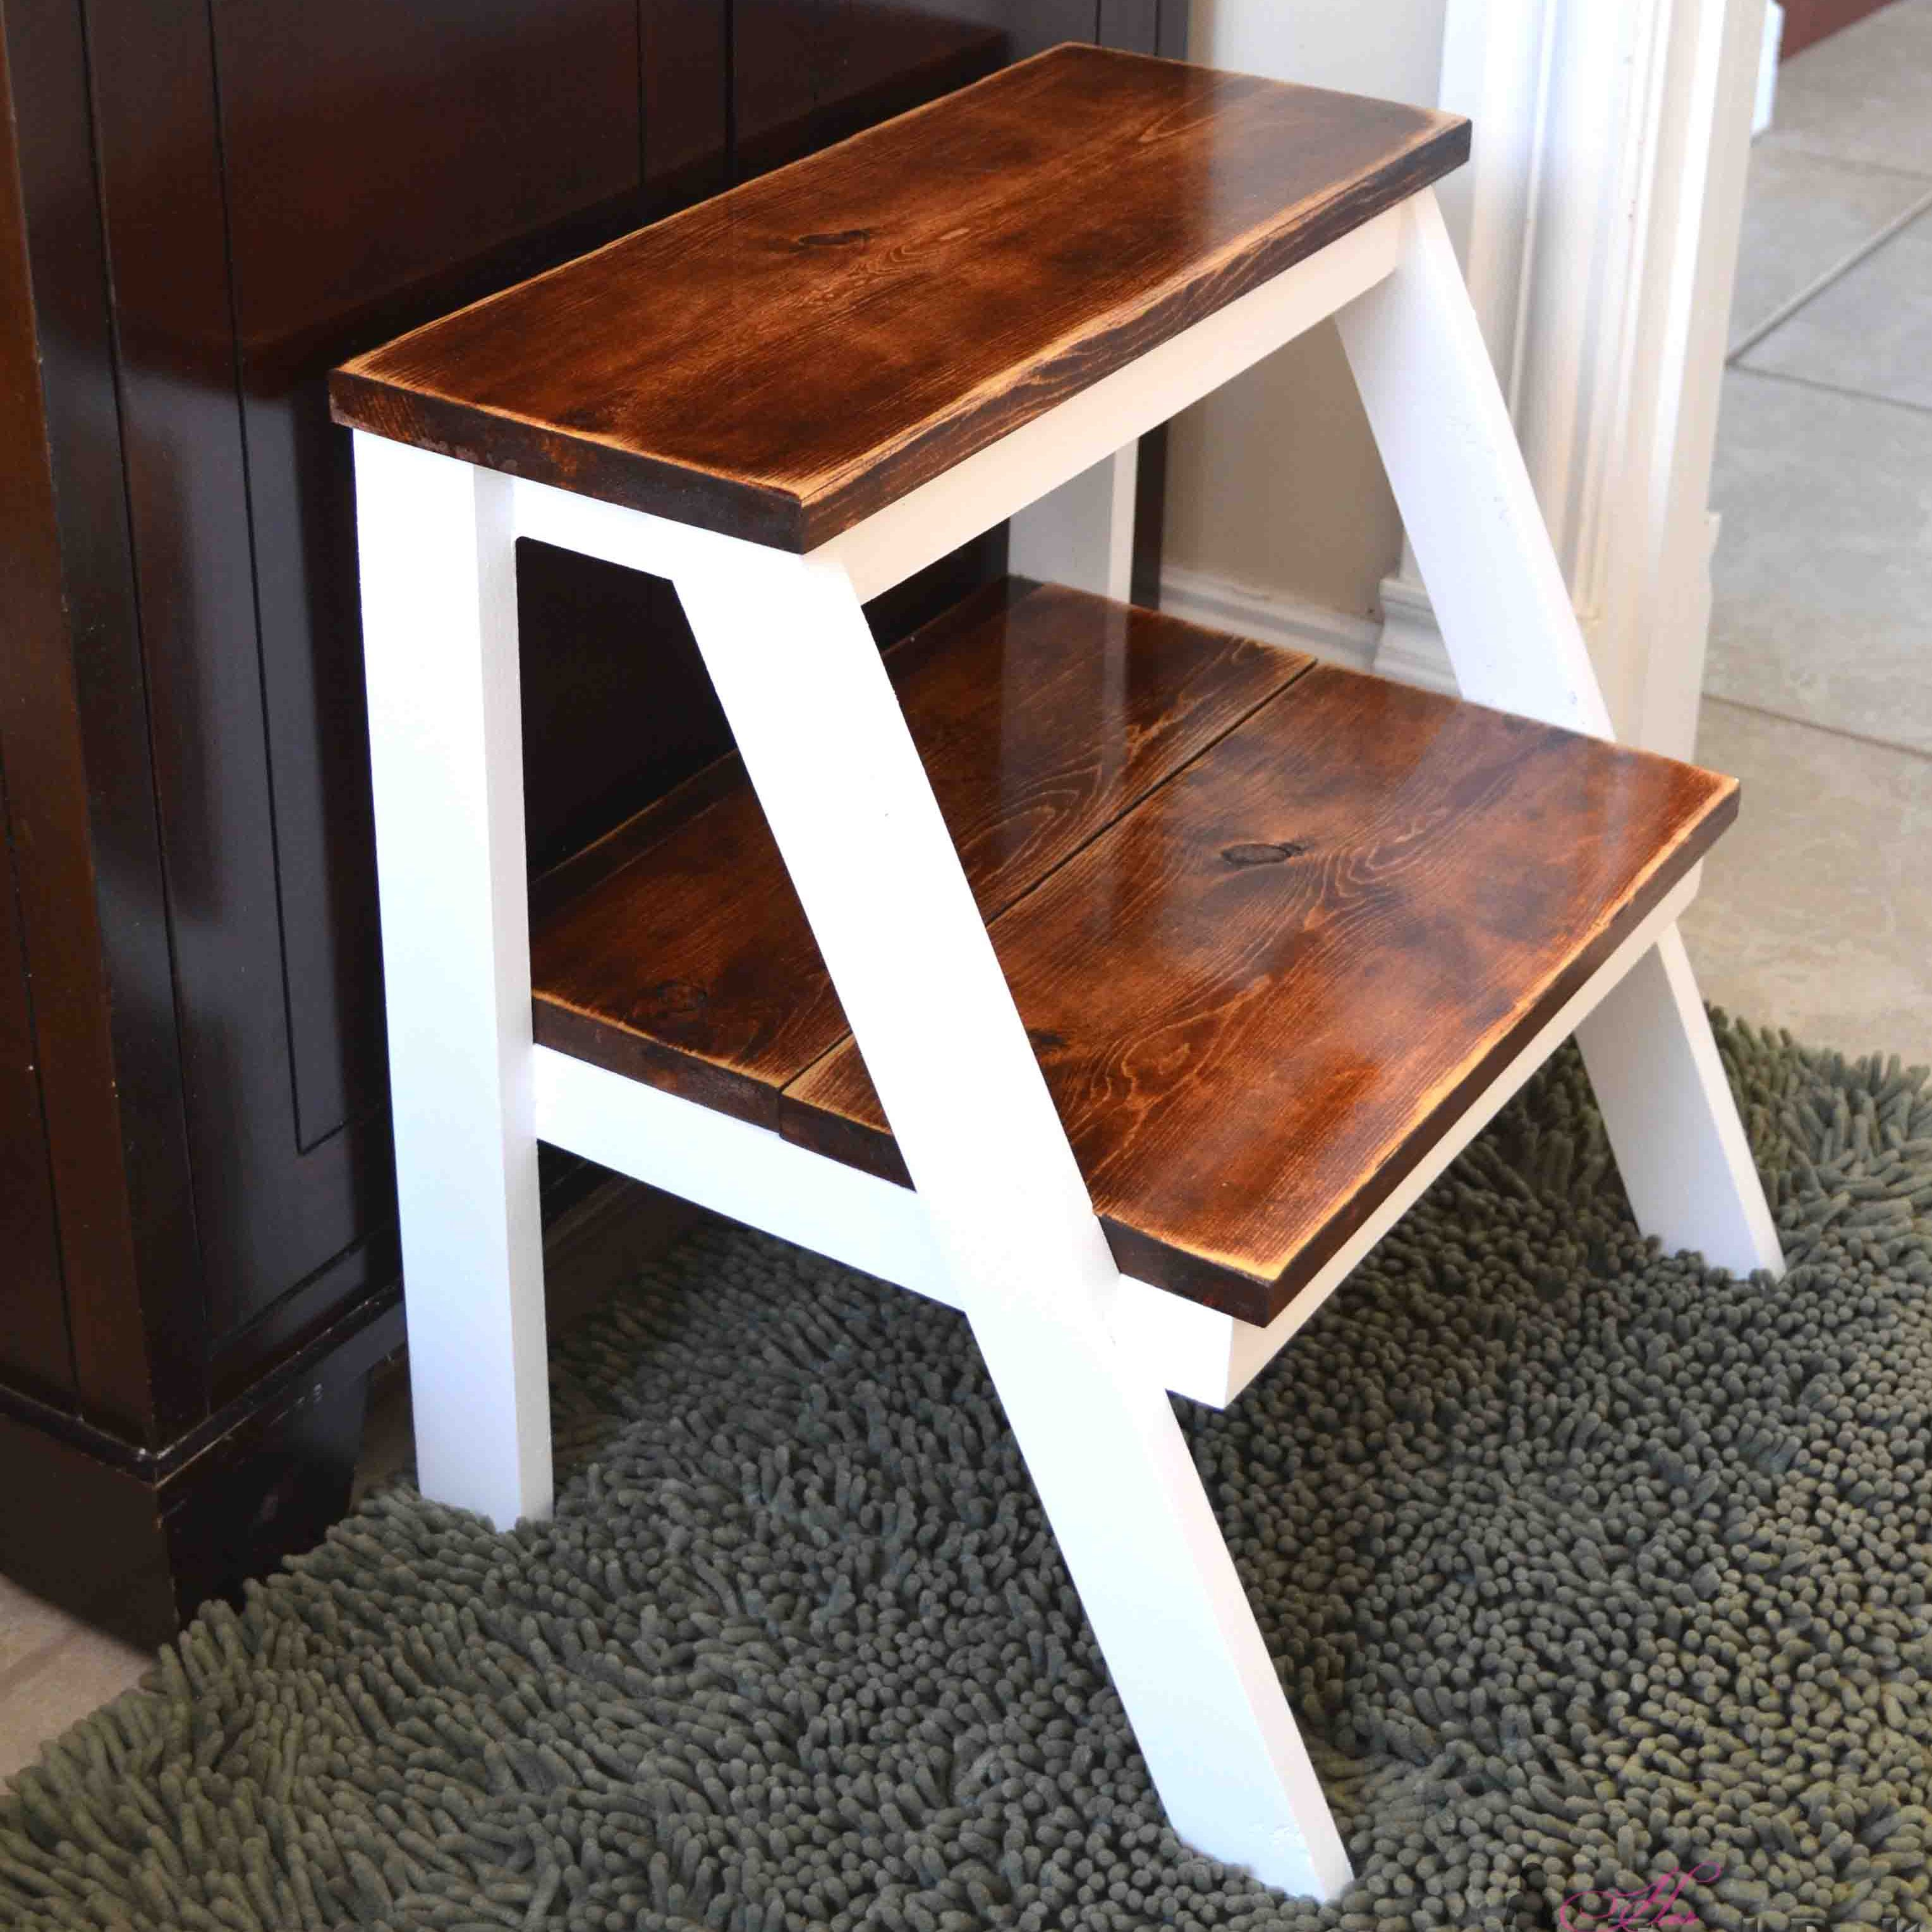 Fabulous 10 Free Plans For A Diy Step Stool Beatyapartments Chair Design Images Beatyapartmentscom